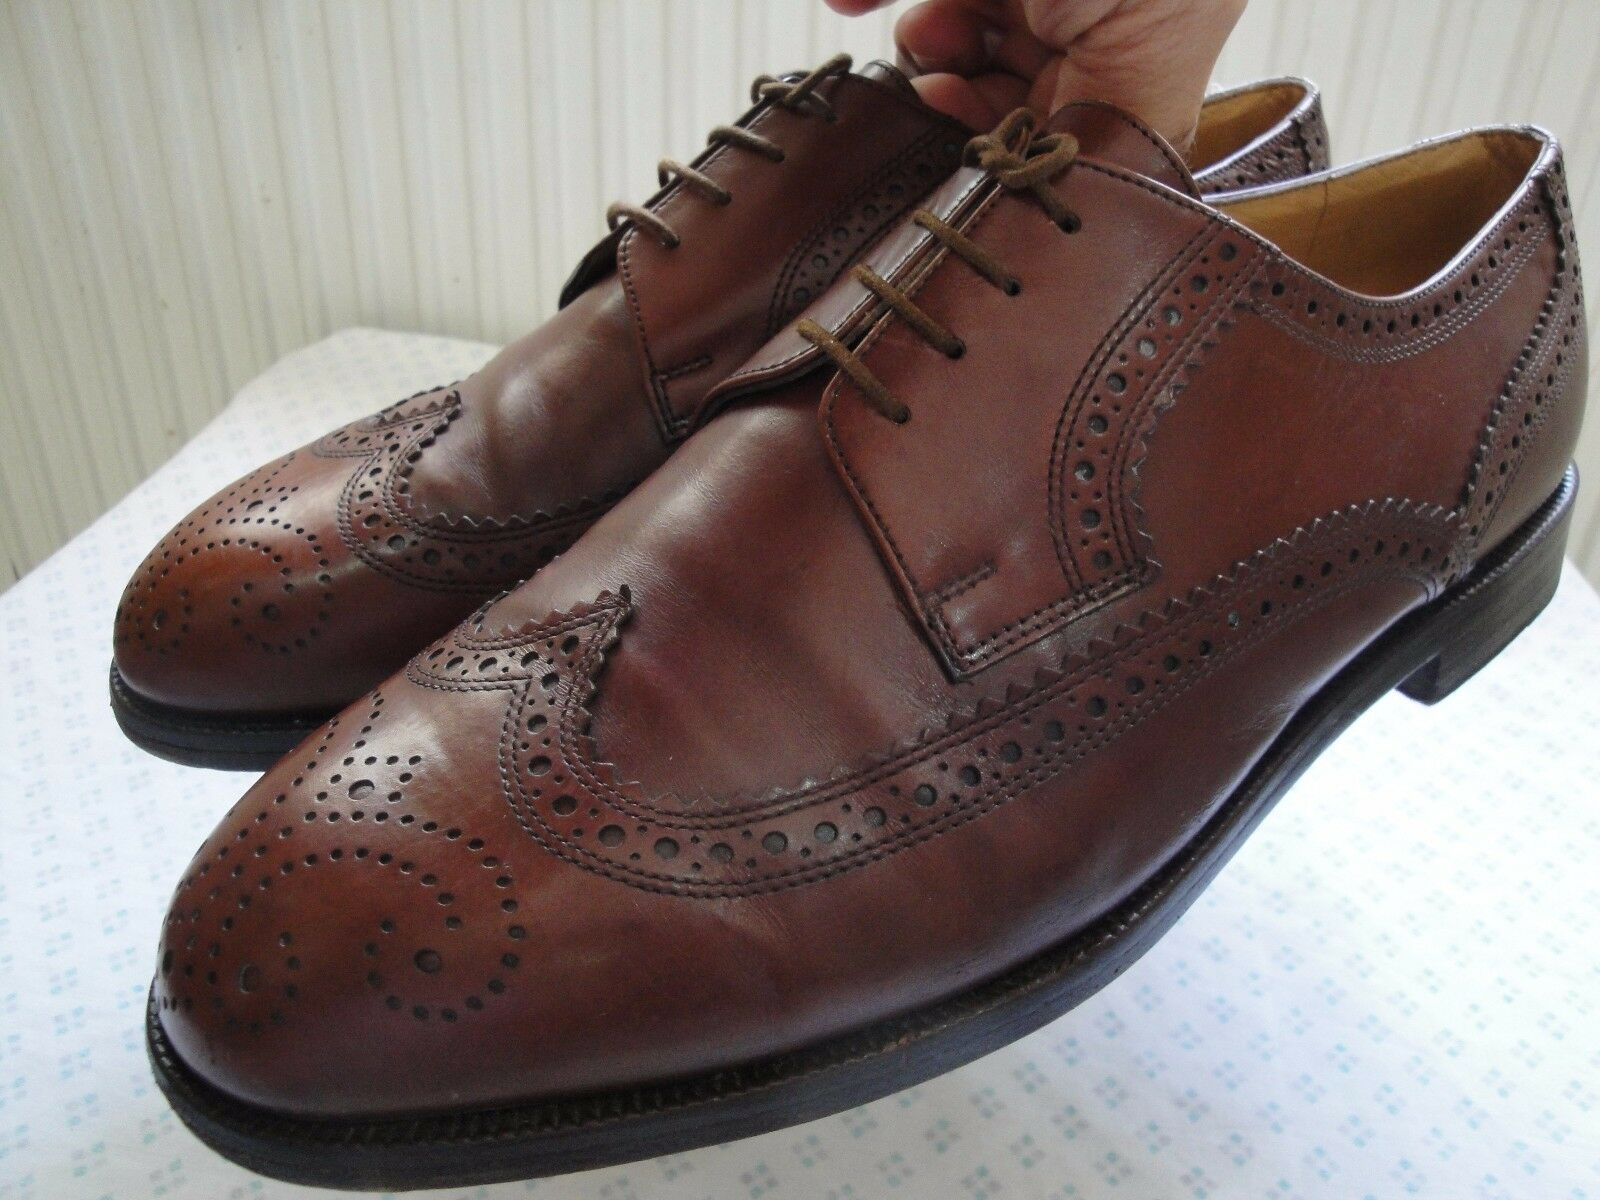 Bally Wingtip Parawet Wingtip Bally Men Schuhes Braun Leder Made In Switzerland US Größe 9 D 8c4276